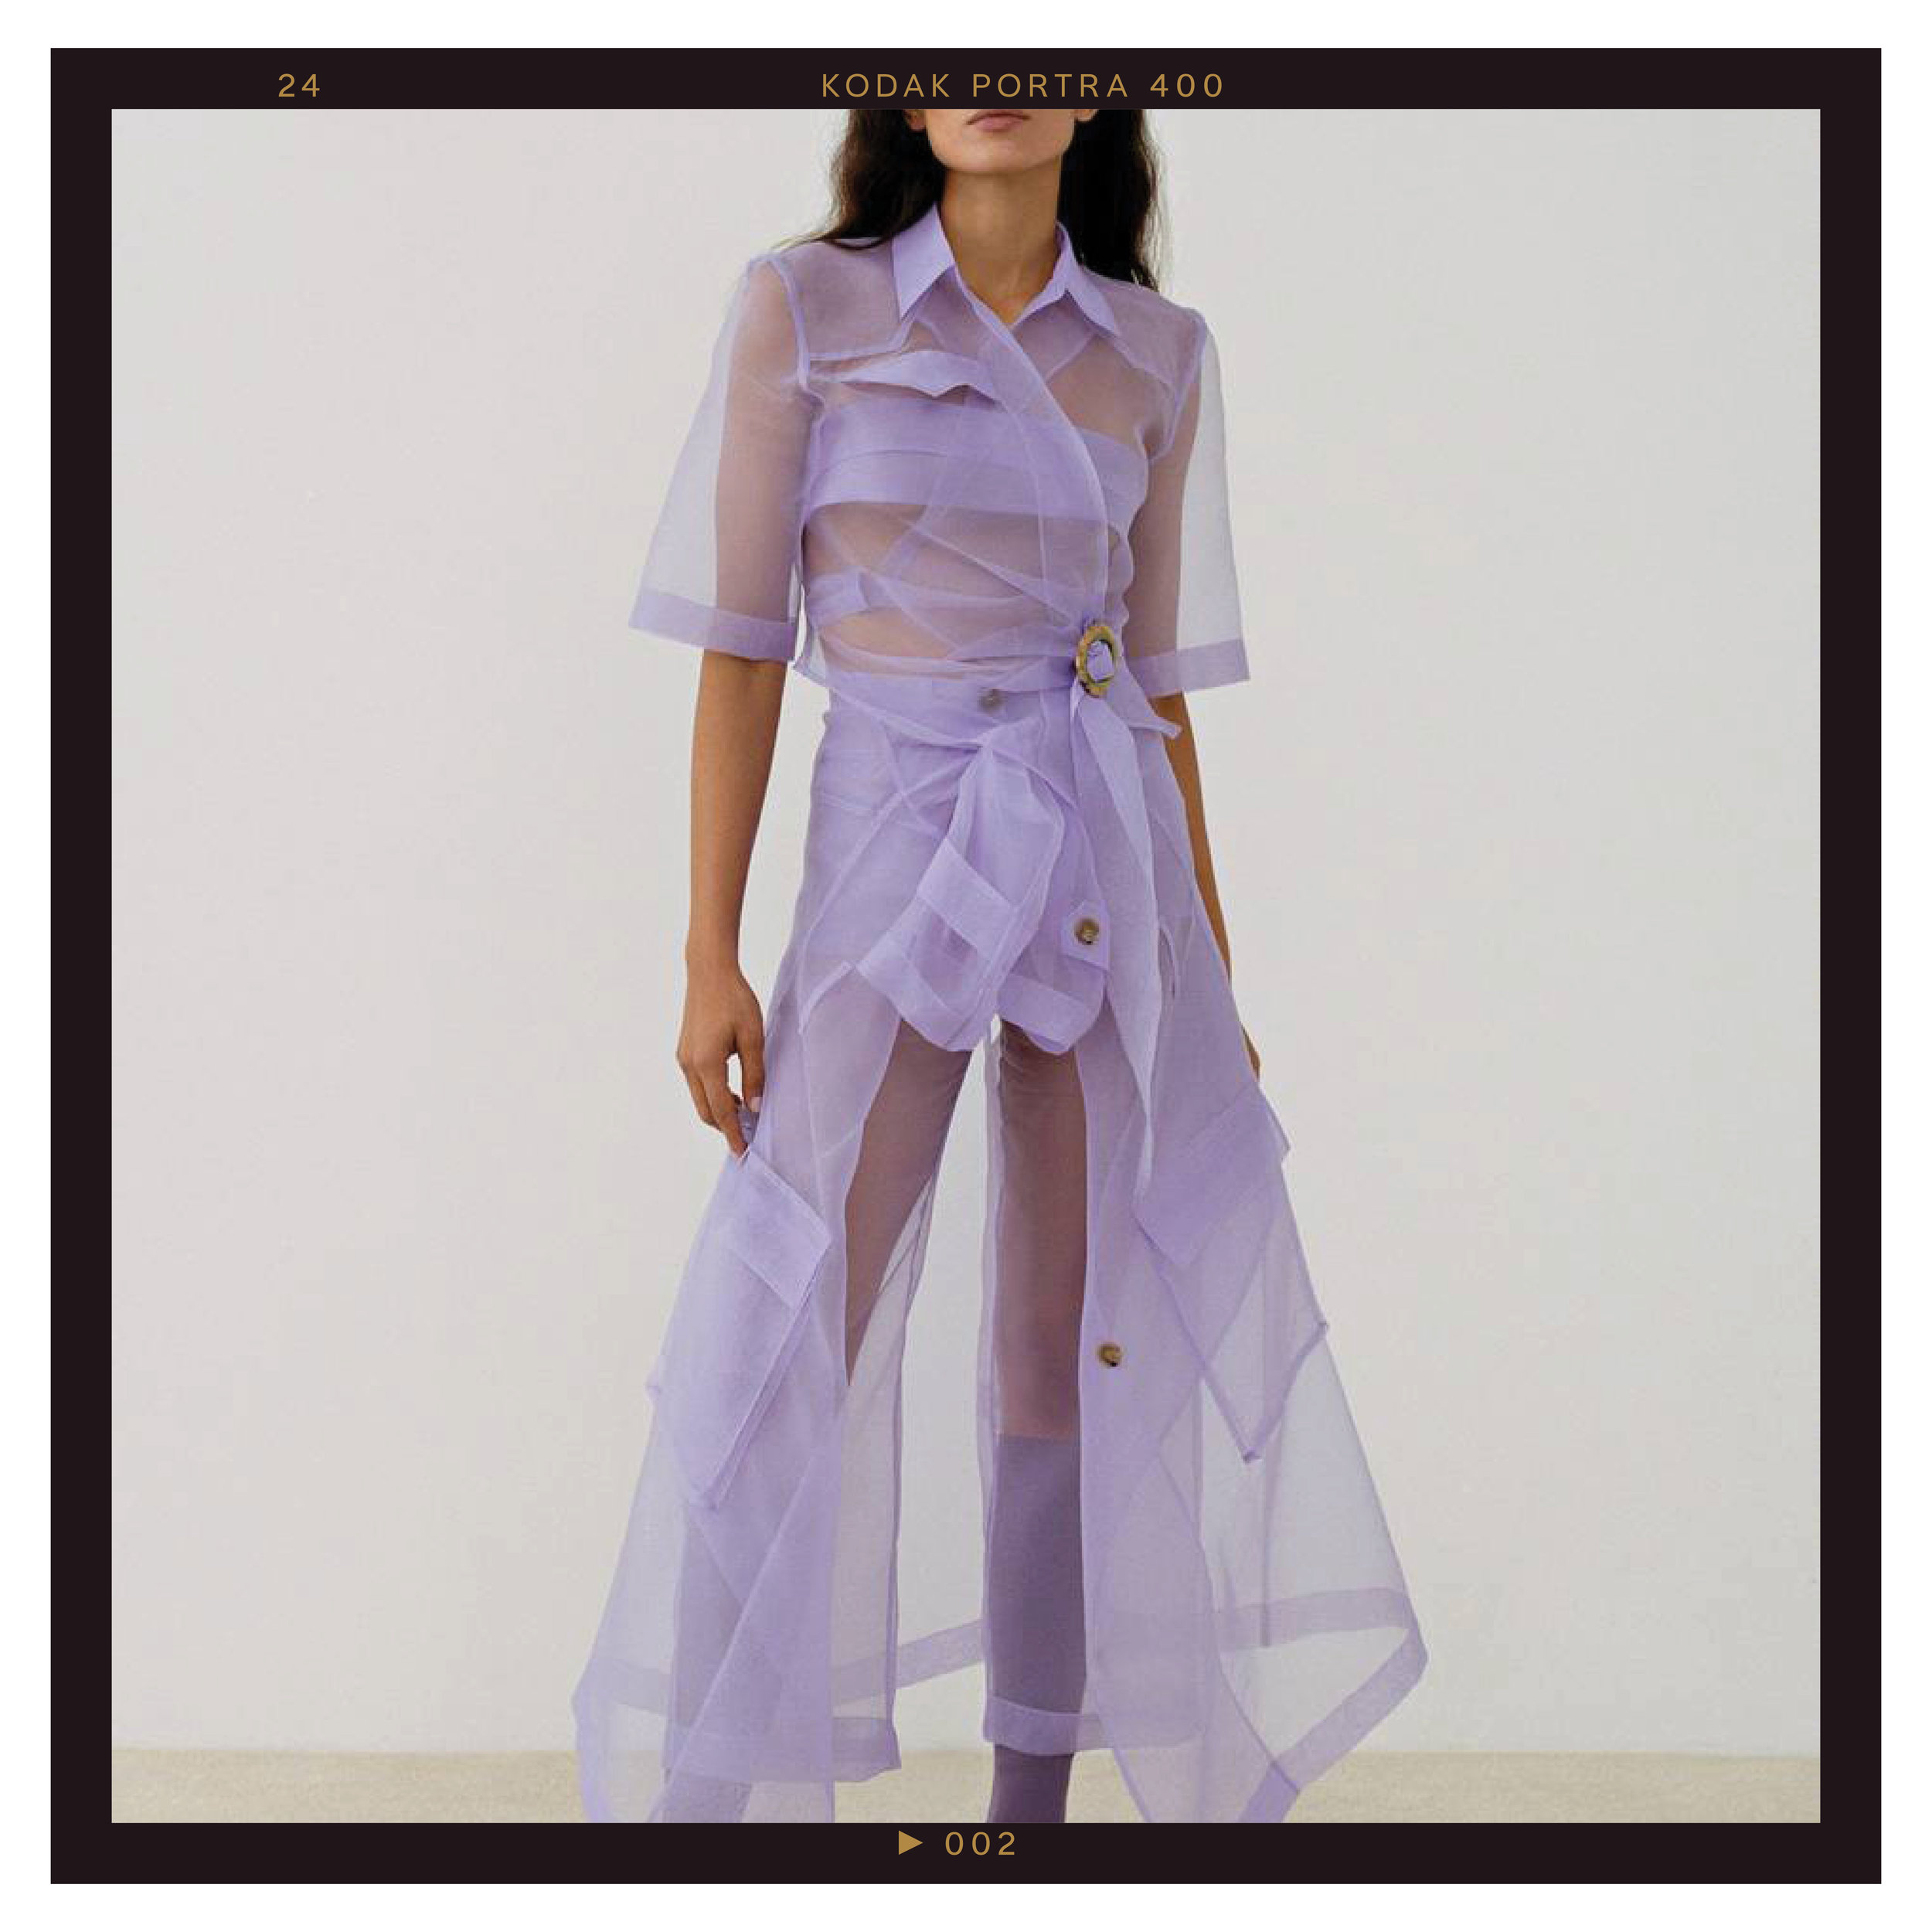 50 Shades of Purple - The standout hue on the F/W 19 runways was undoubtedly purple. Whether it was the soft tint of lavender at Nanushka, Tom Ford, and Tibi or saturated grape shades at Kate Spade, Michael Kors, and Sally LaPointe, practically every designer had a touch of purple in their collection.